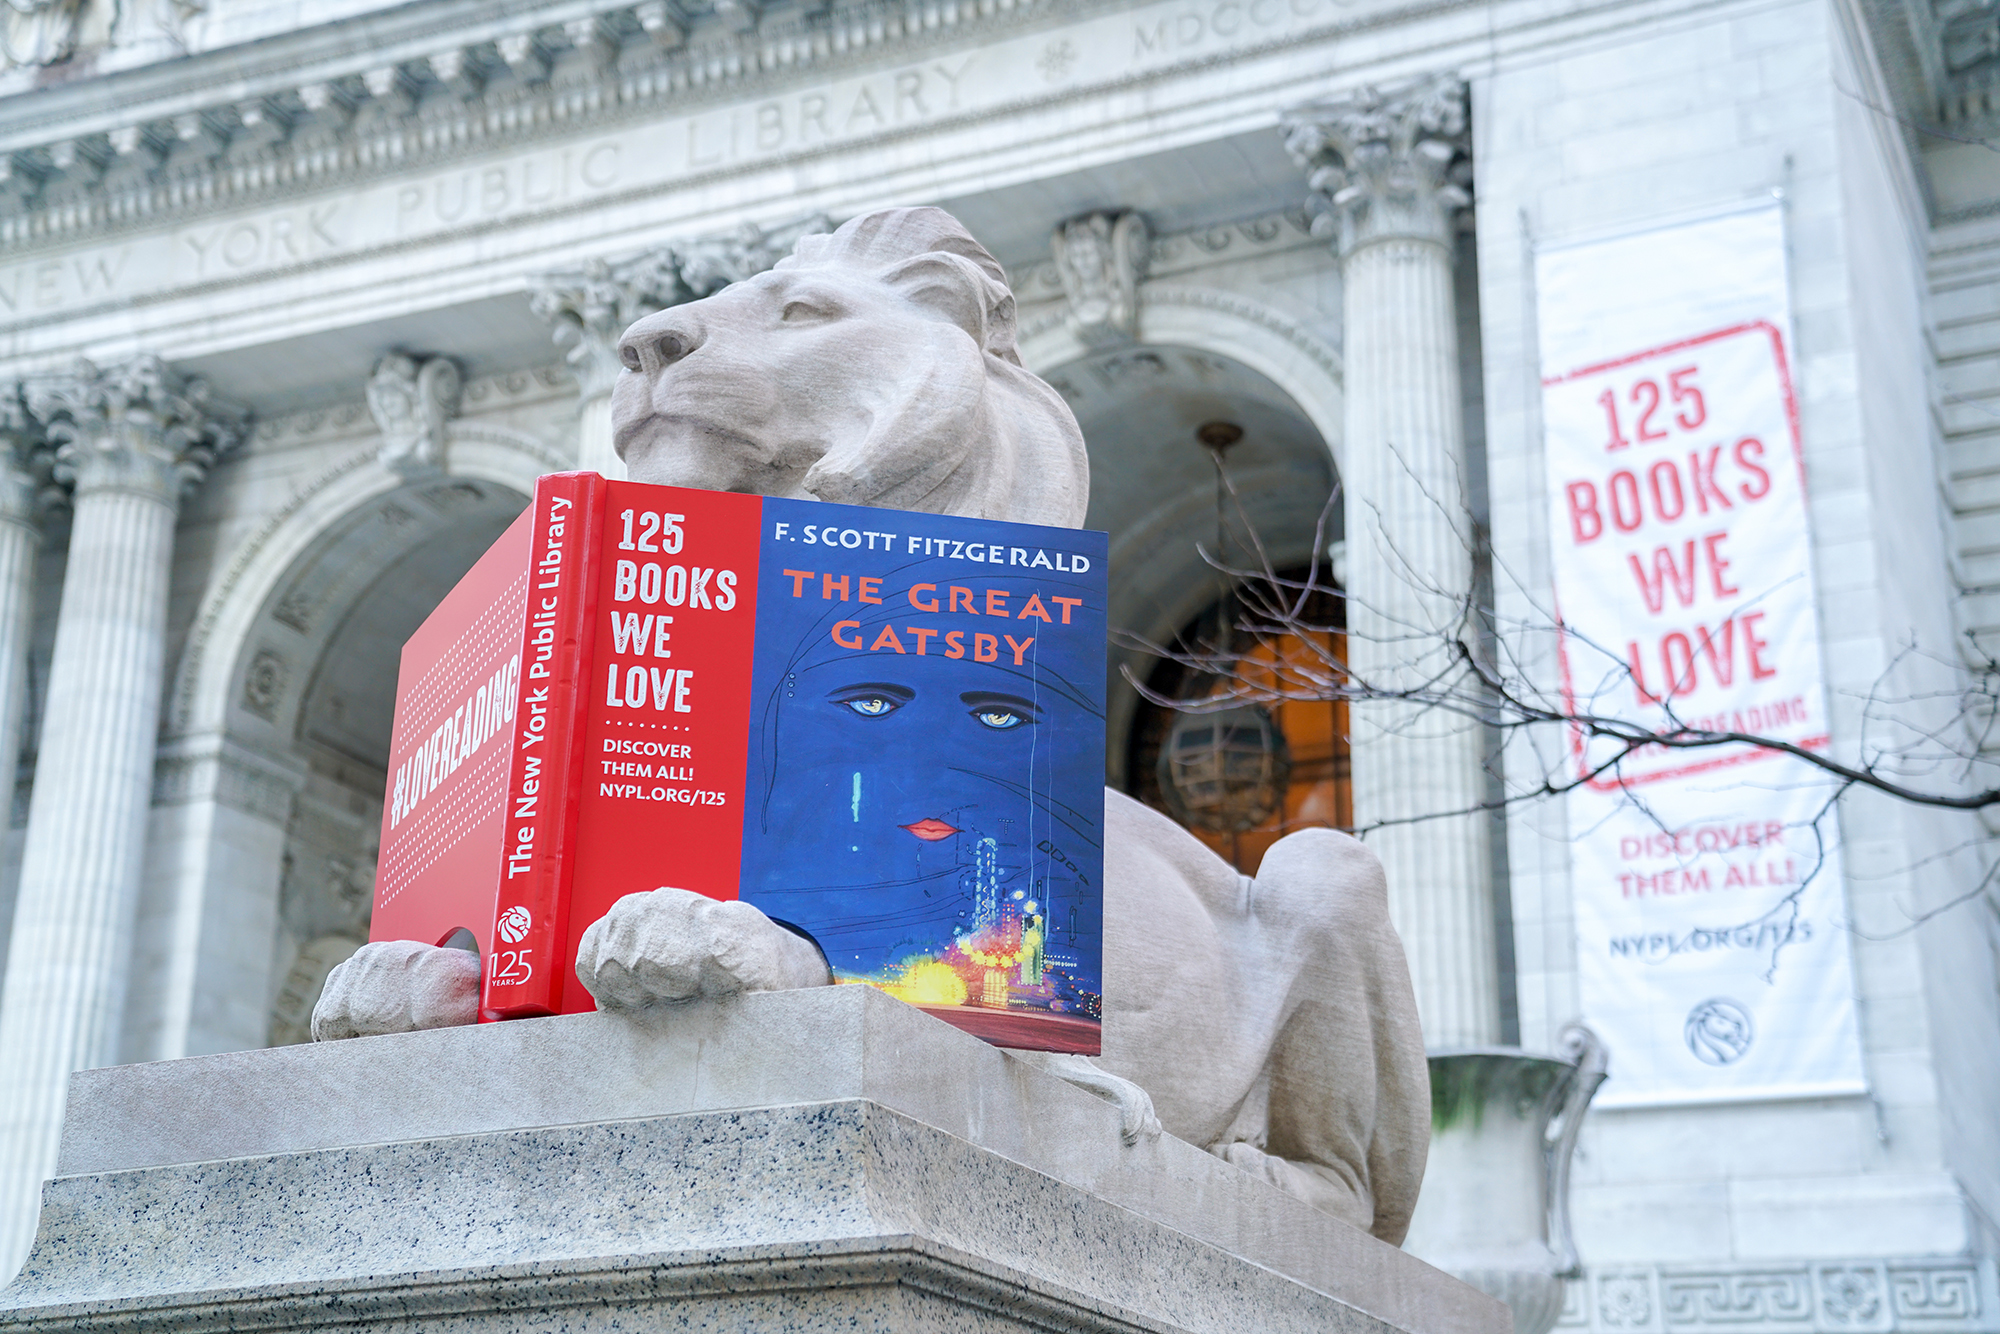 Download over 300,000 books from the NYPL for free